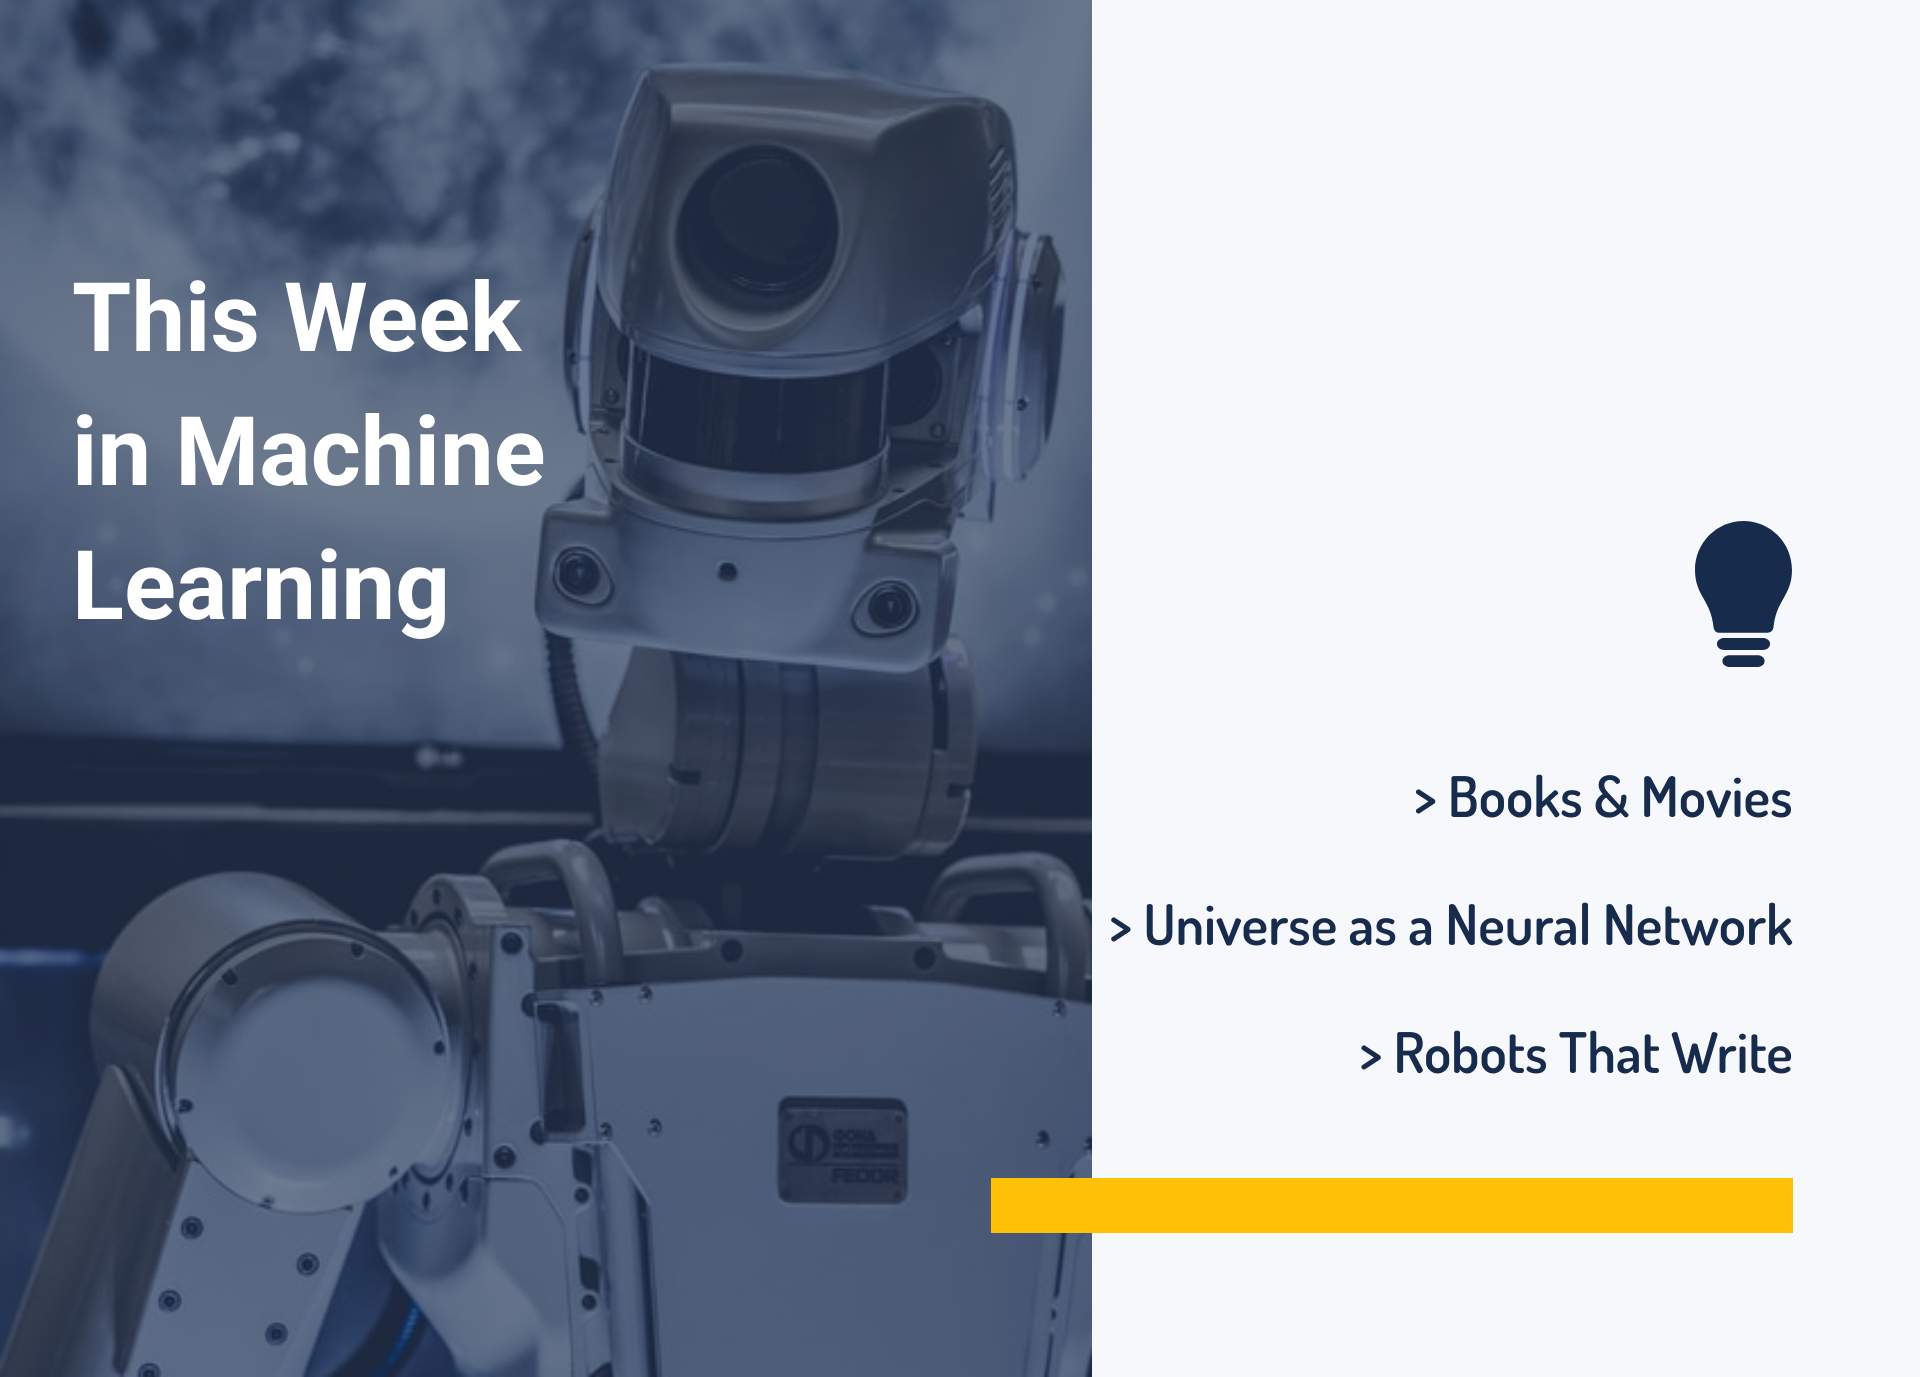 This Week in Machine Learning: Books, Movies, Universe as a Neural Network, and Robots That Write